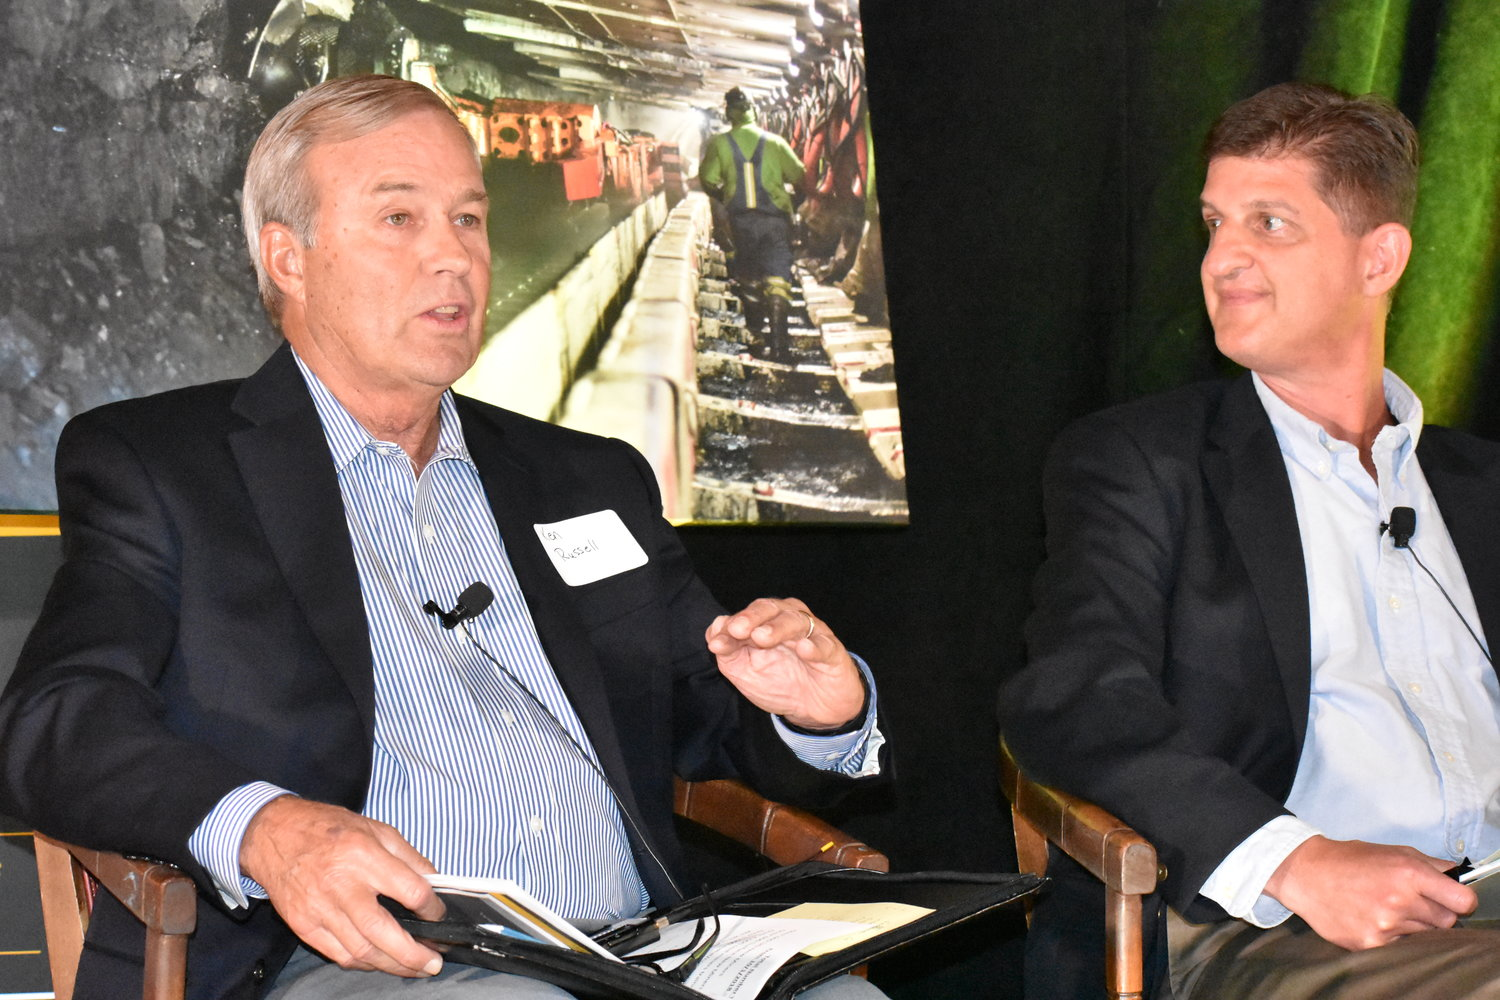 Ken Russell, left, director of workforce solutions for Bevill State Community College, speaks at a panel discussion on the Alabama coal industry Thursday at Musgrove Country Club. Philip K. Saunders, vice president of engineering for Warrior Met Coal, listens.